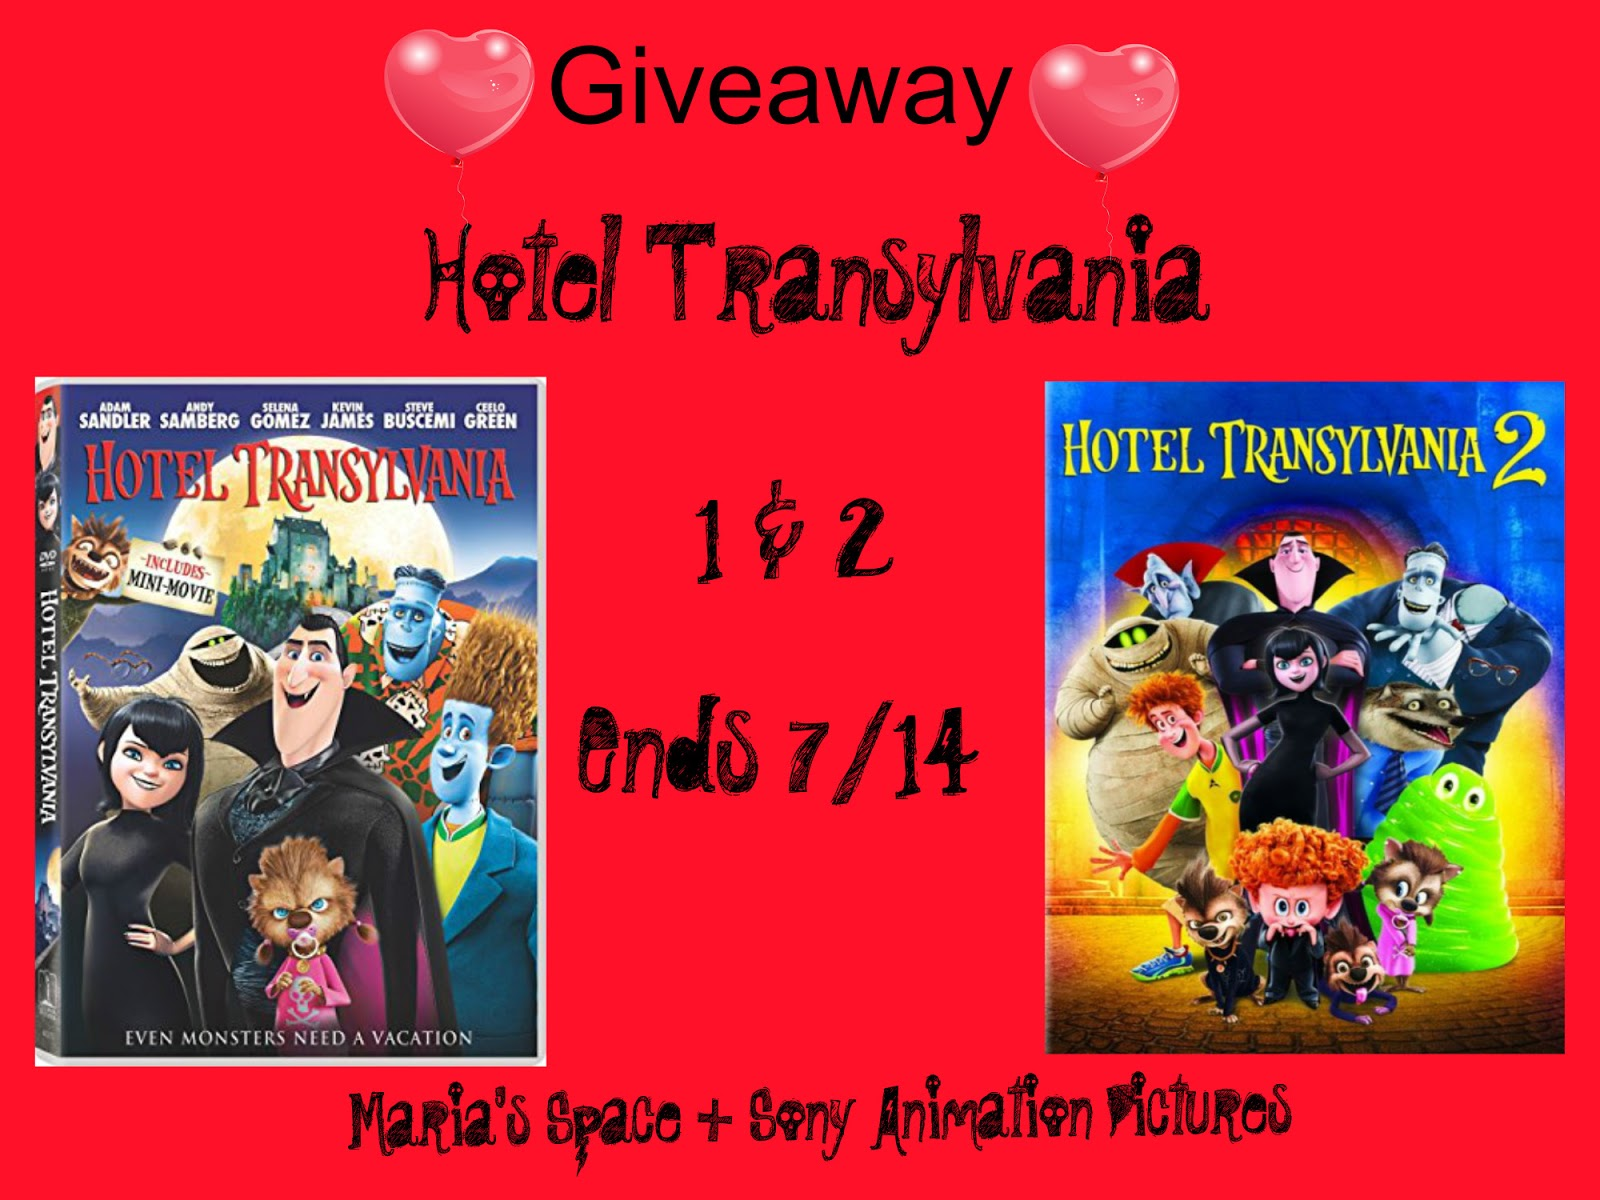 Hotel Transylvania 1 2 DVD Prize Pack GIVEAWAY HotelT3